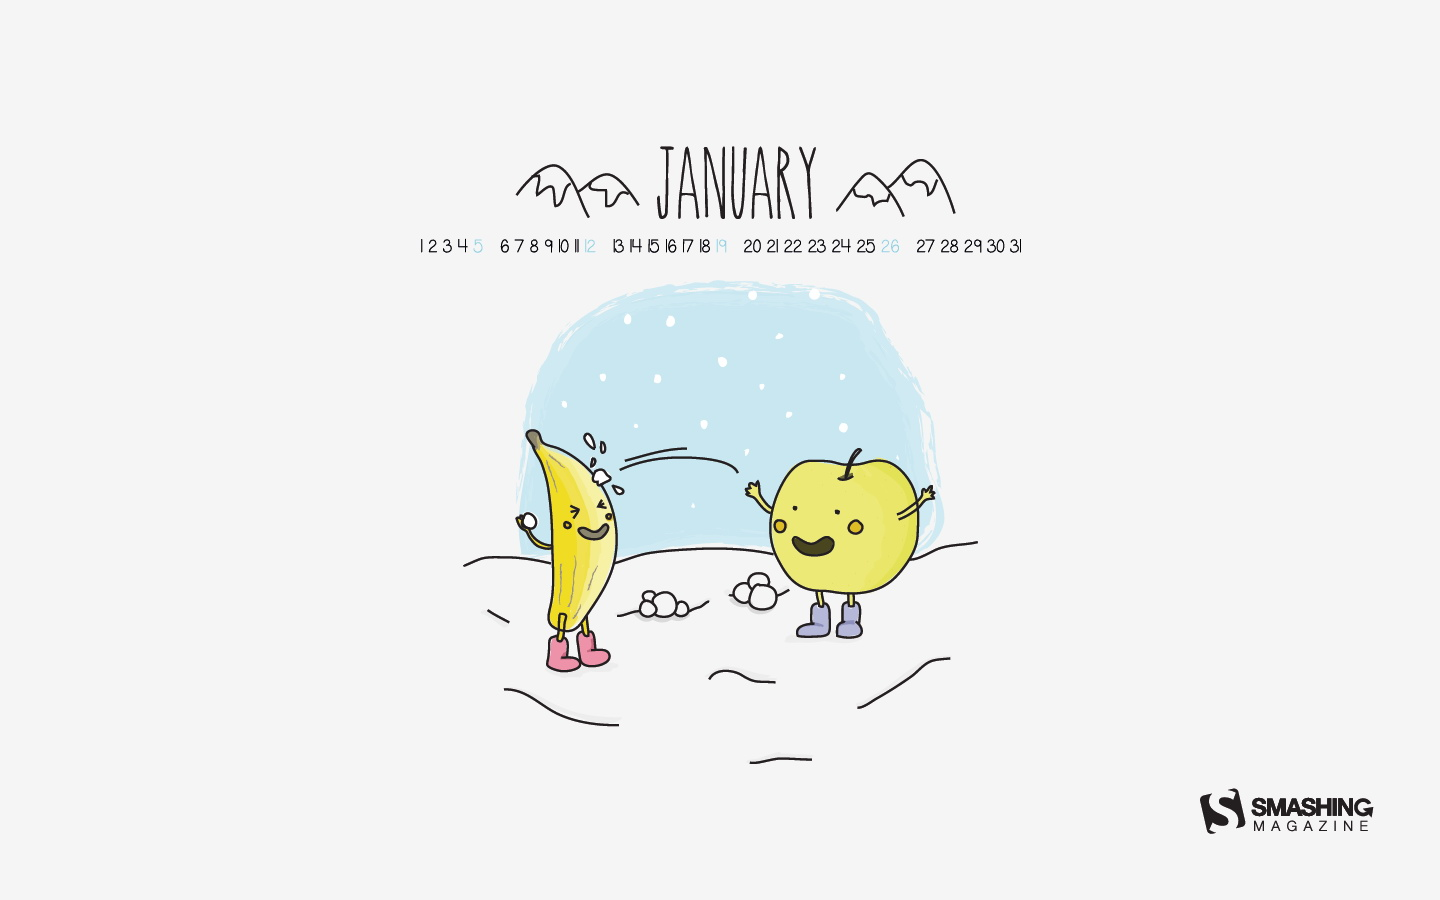 In January Calendar Wallpaper 49857